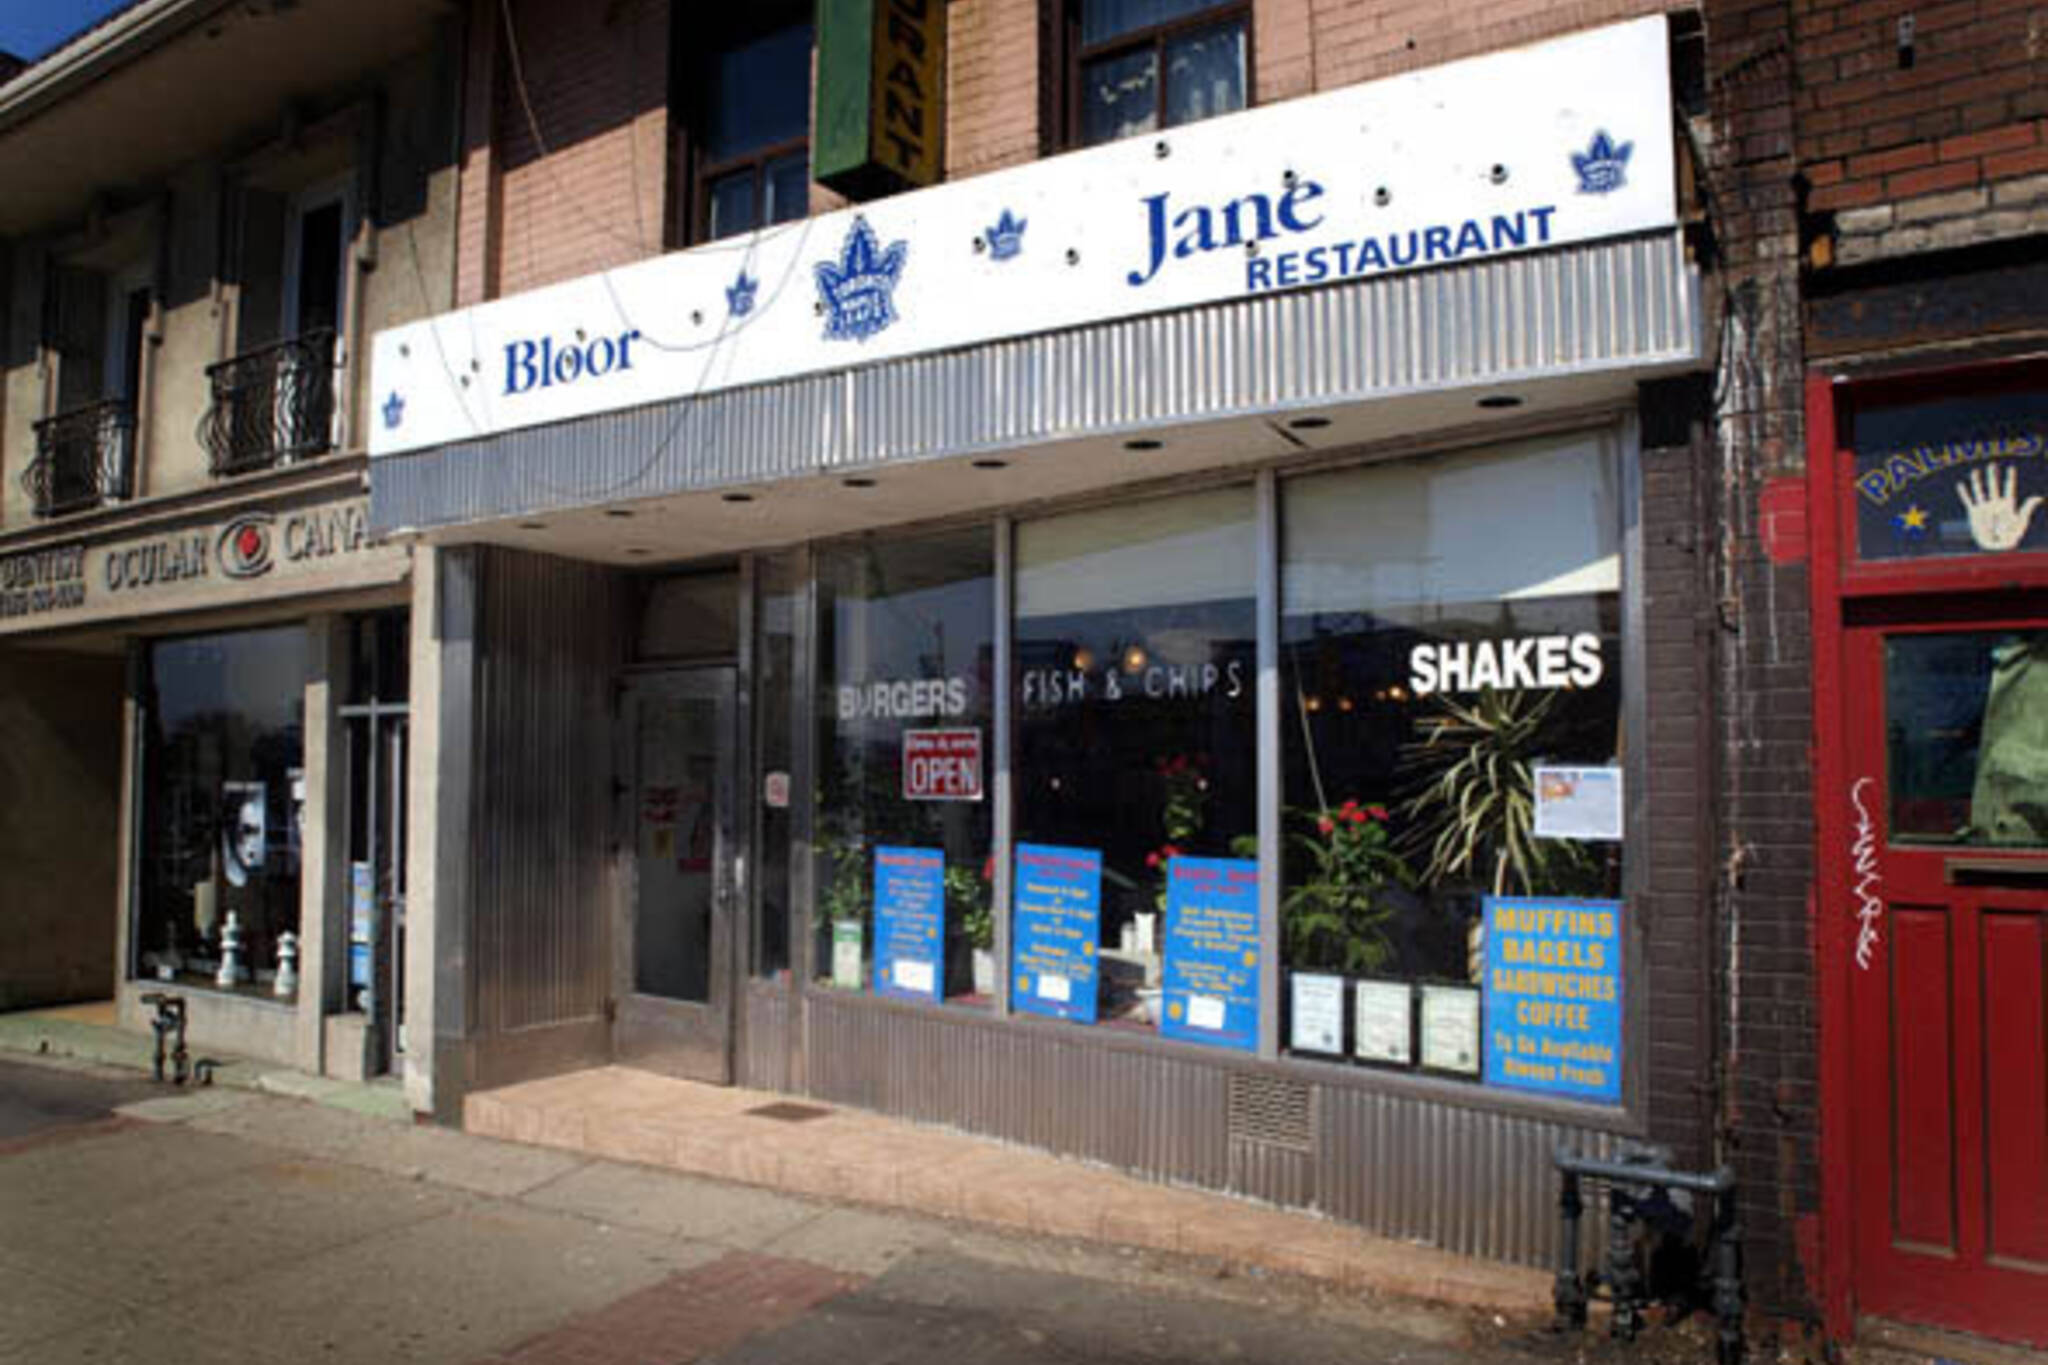 Bloor Jane Restaurant